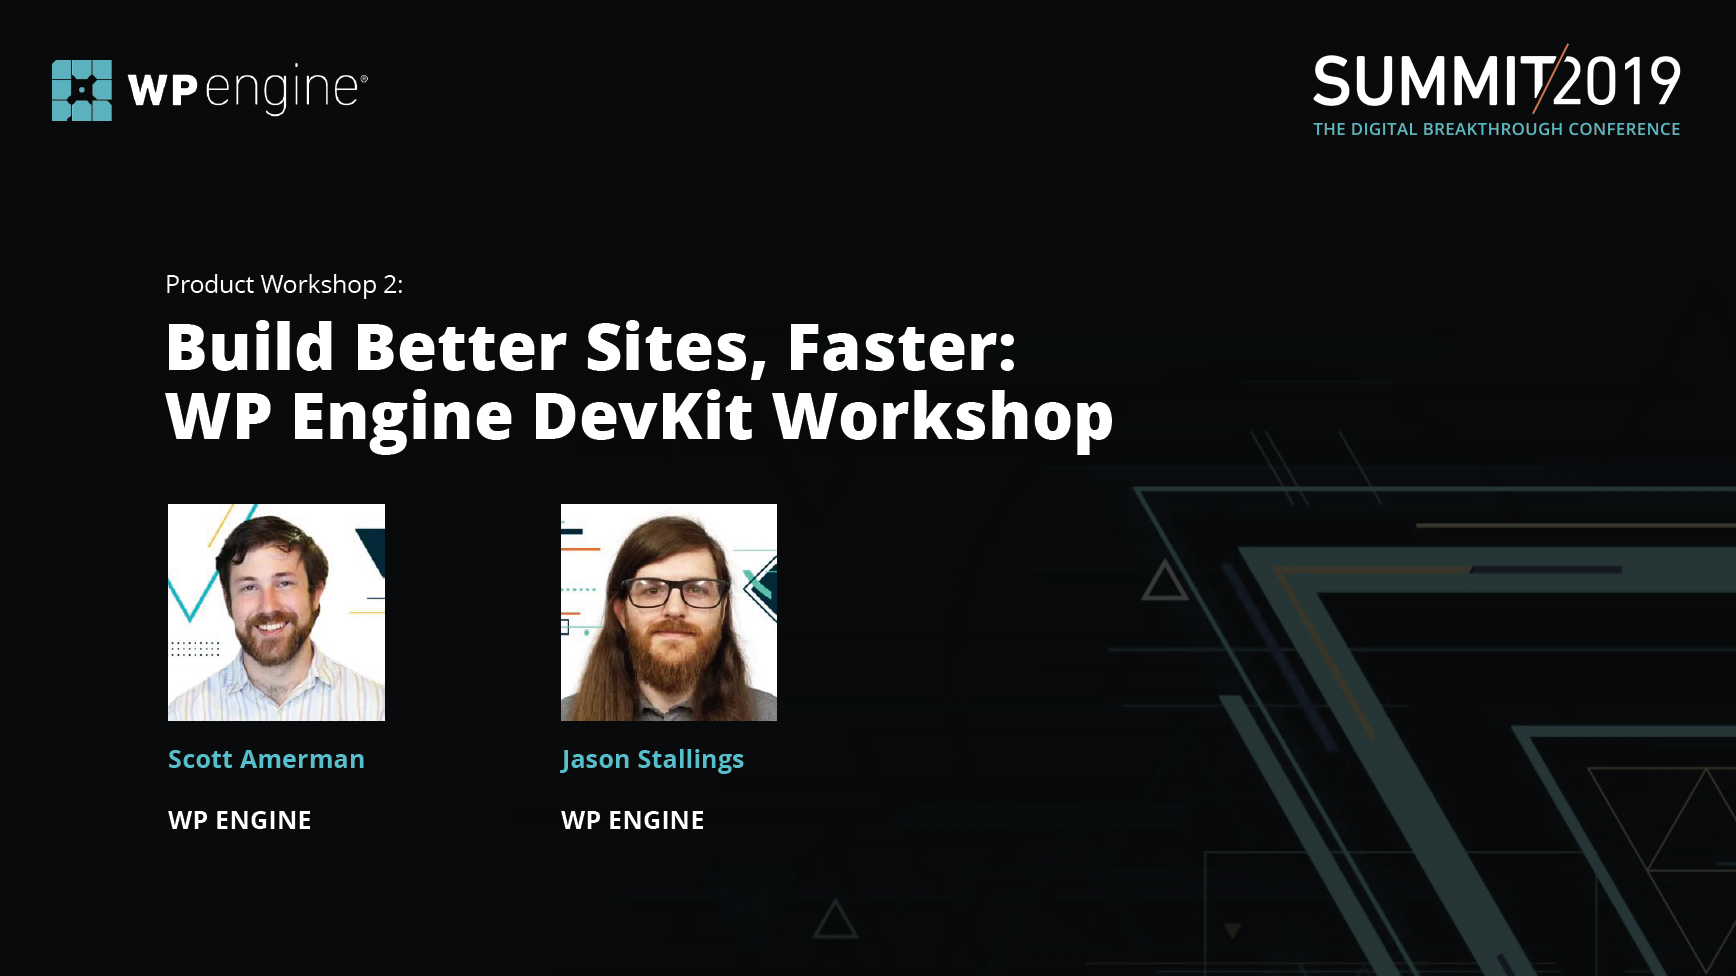 US Summit 2019 - WP Engine - Product Workshop 2- Build Better Sites, Faster- WP Engine DevKit Workshop